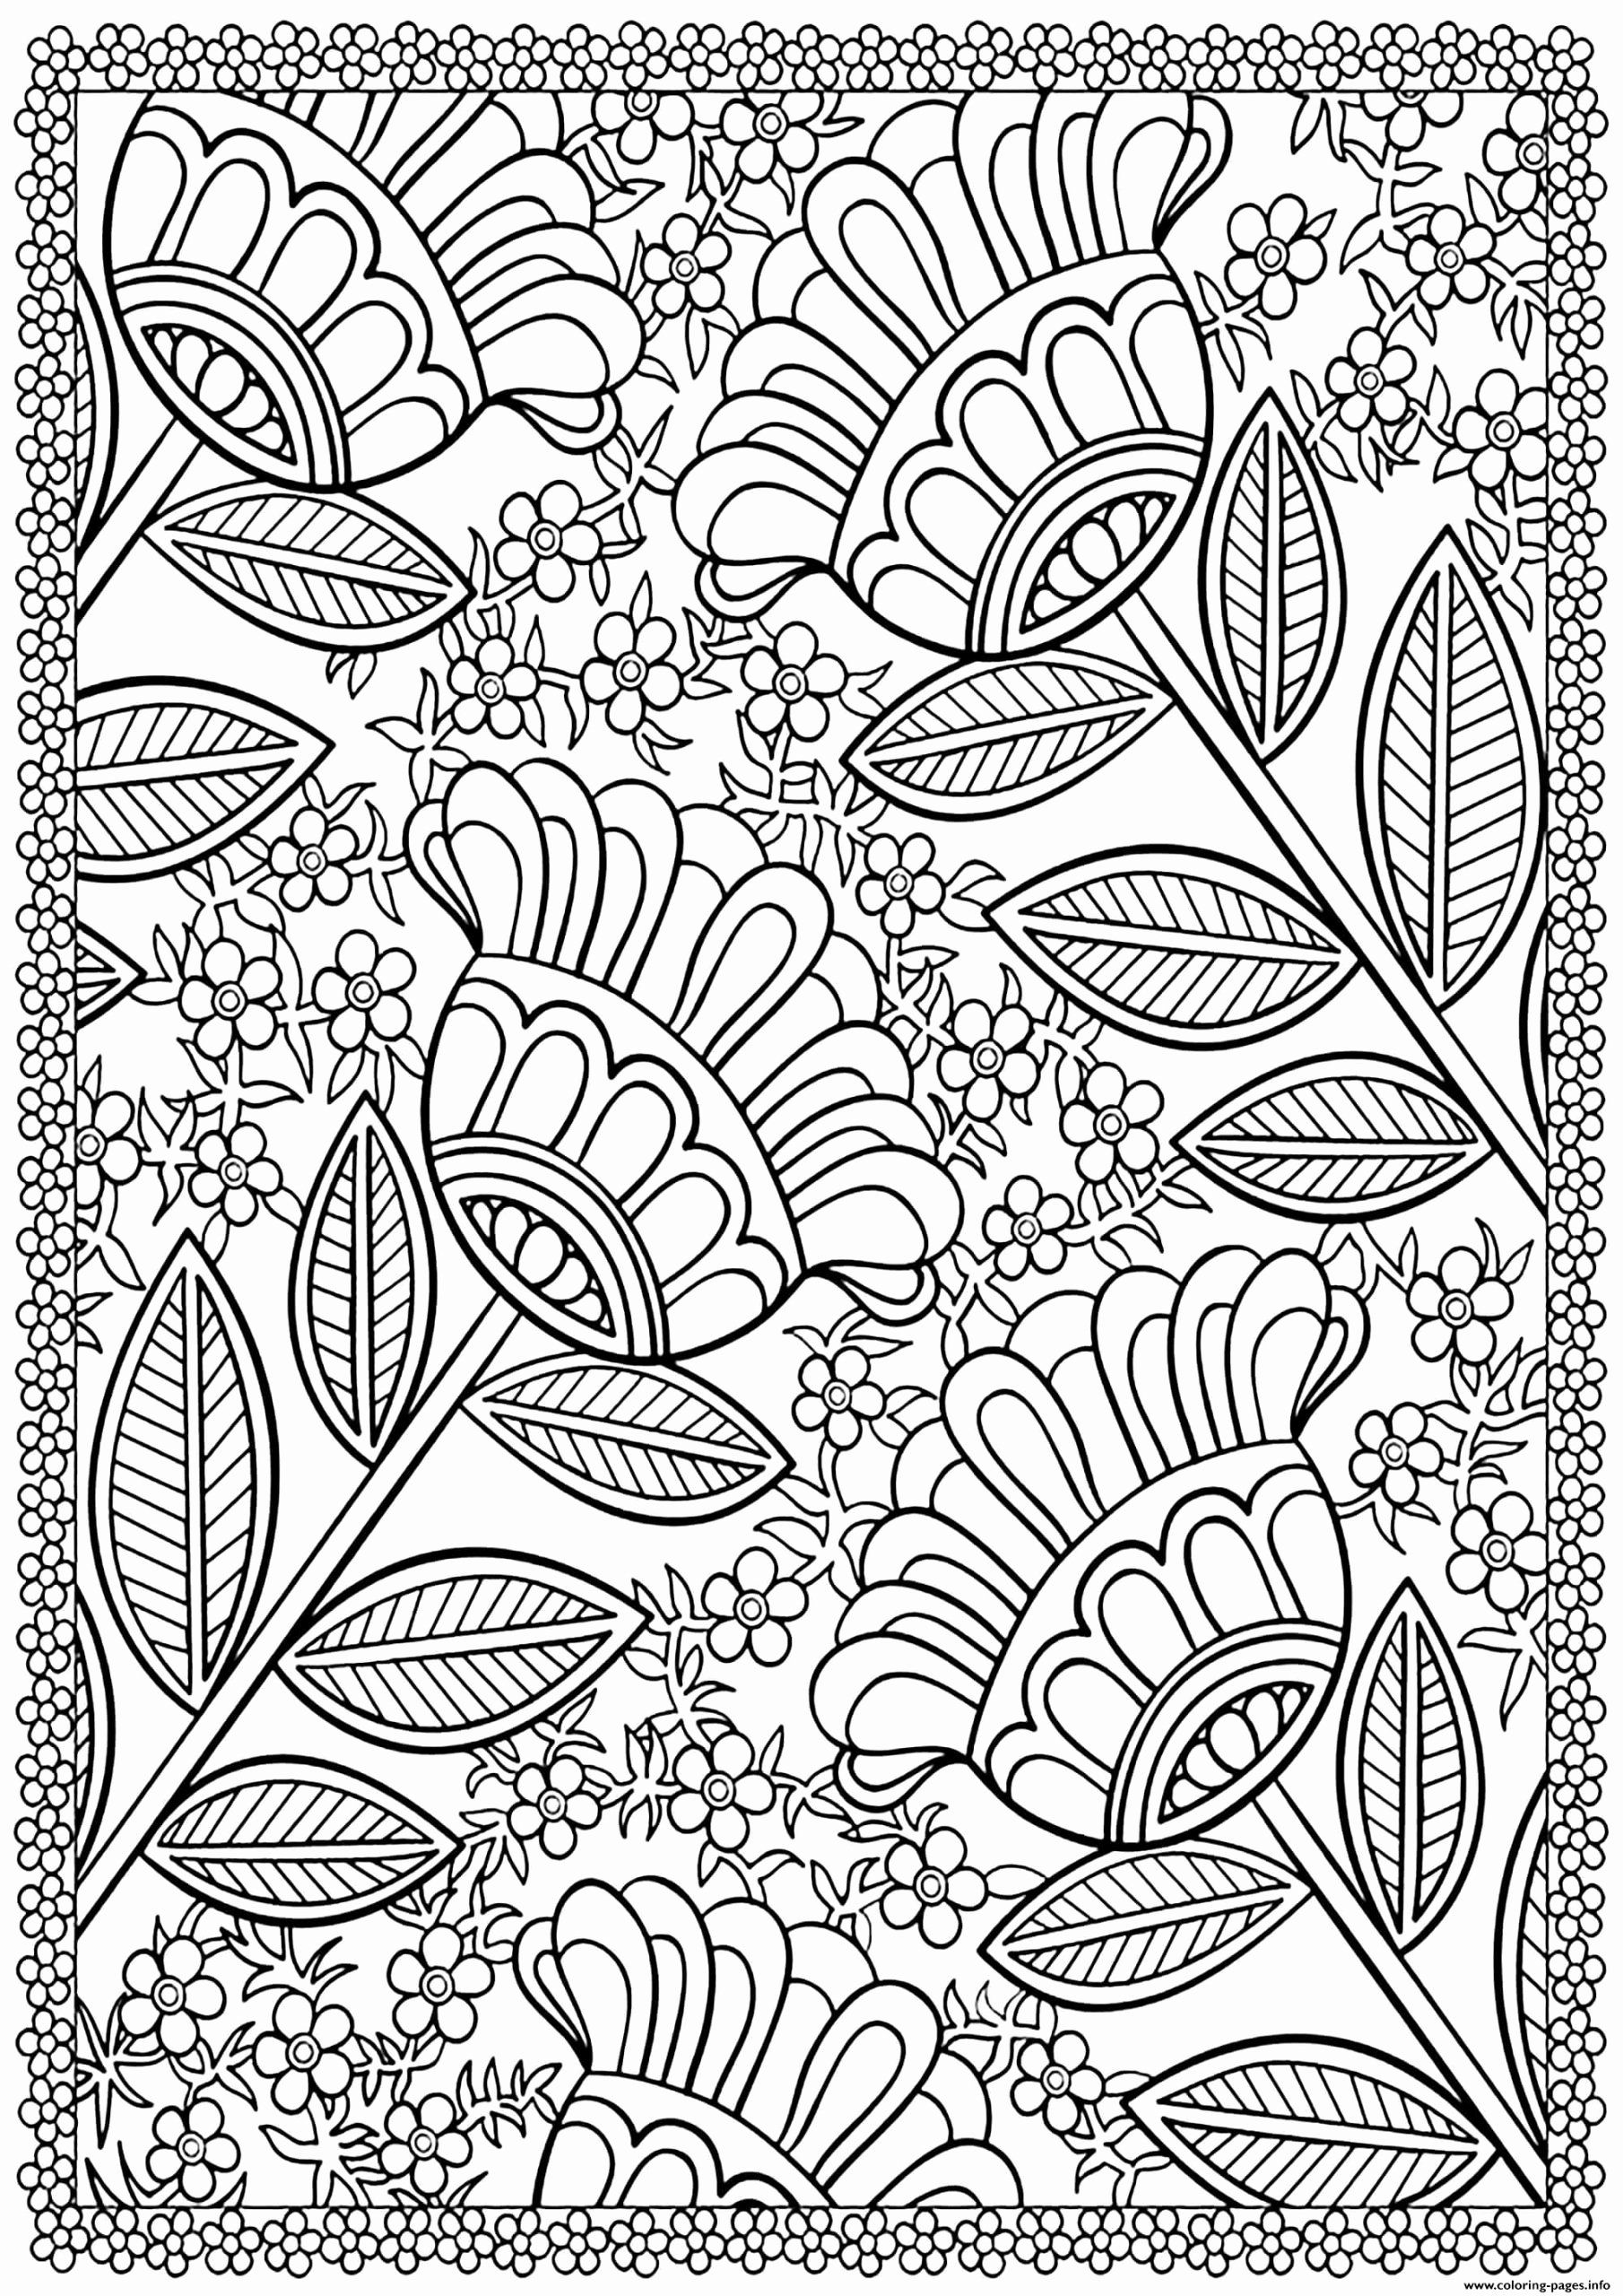 Alisaburke Free Giant Coloring Page Called Engineer Print Sized At 36 X 48 Print Coloring Pages To Print Coloring Pages Abstract Coloring Pages